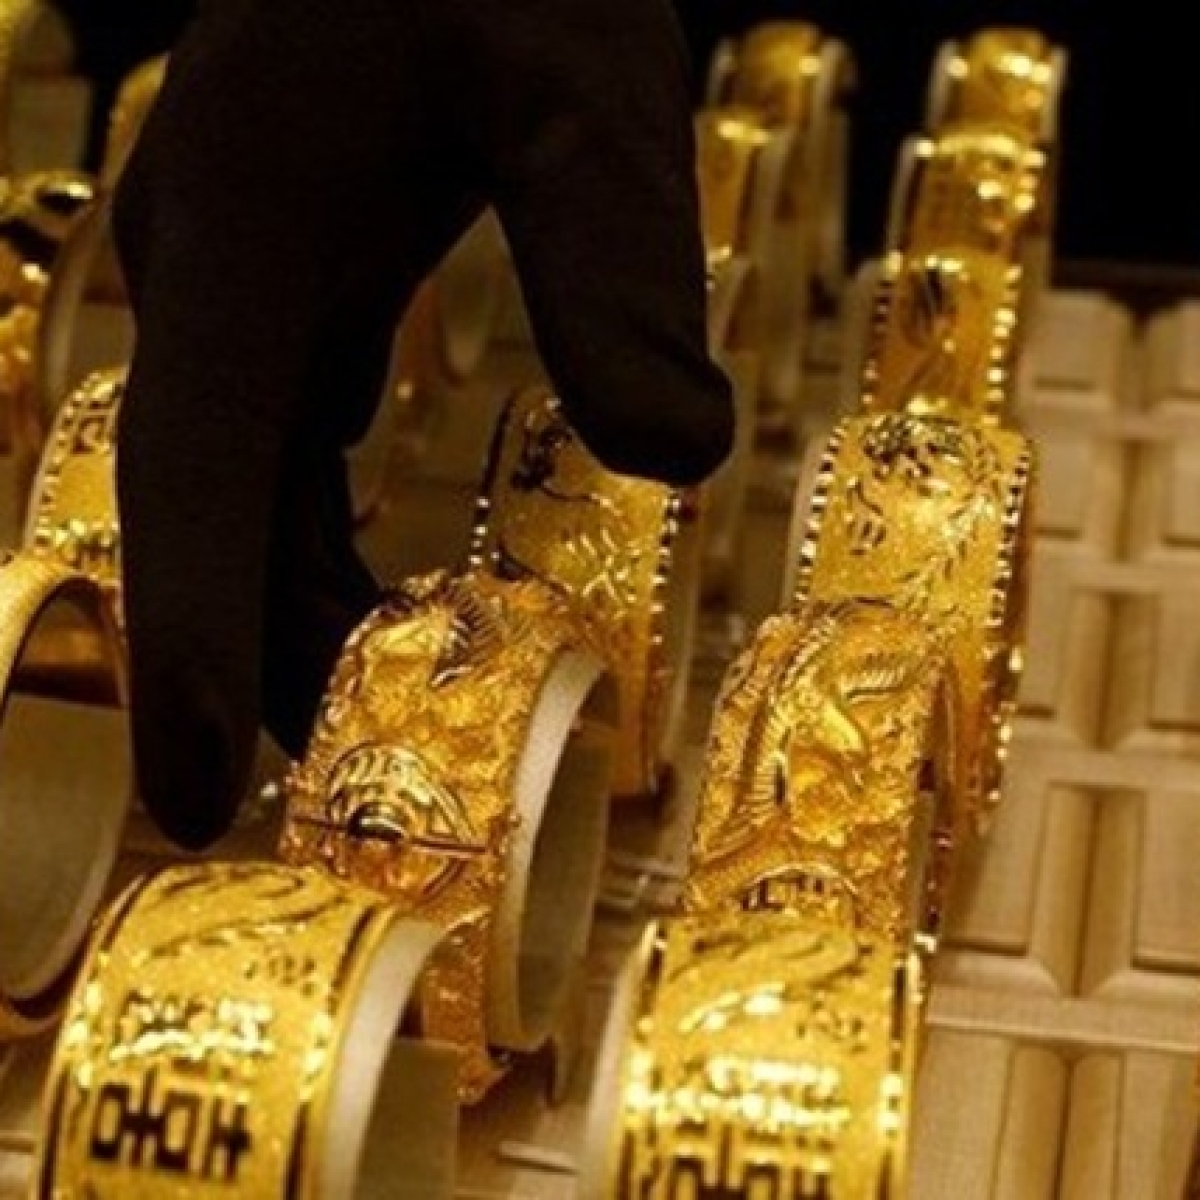 Gold Price Update on Jan 28, 2020 - Gold to the forefront as coronavirus panic spreads